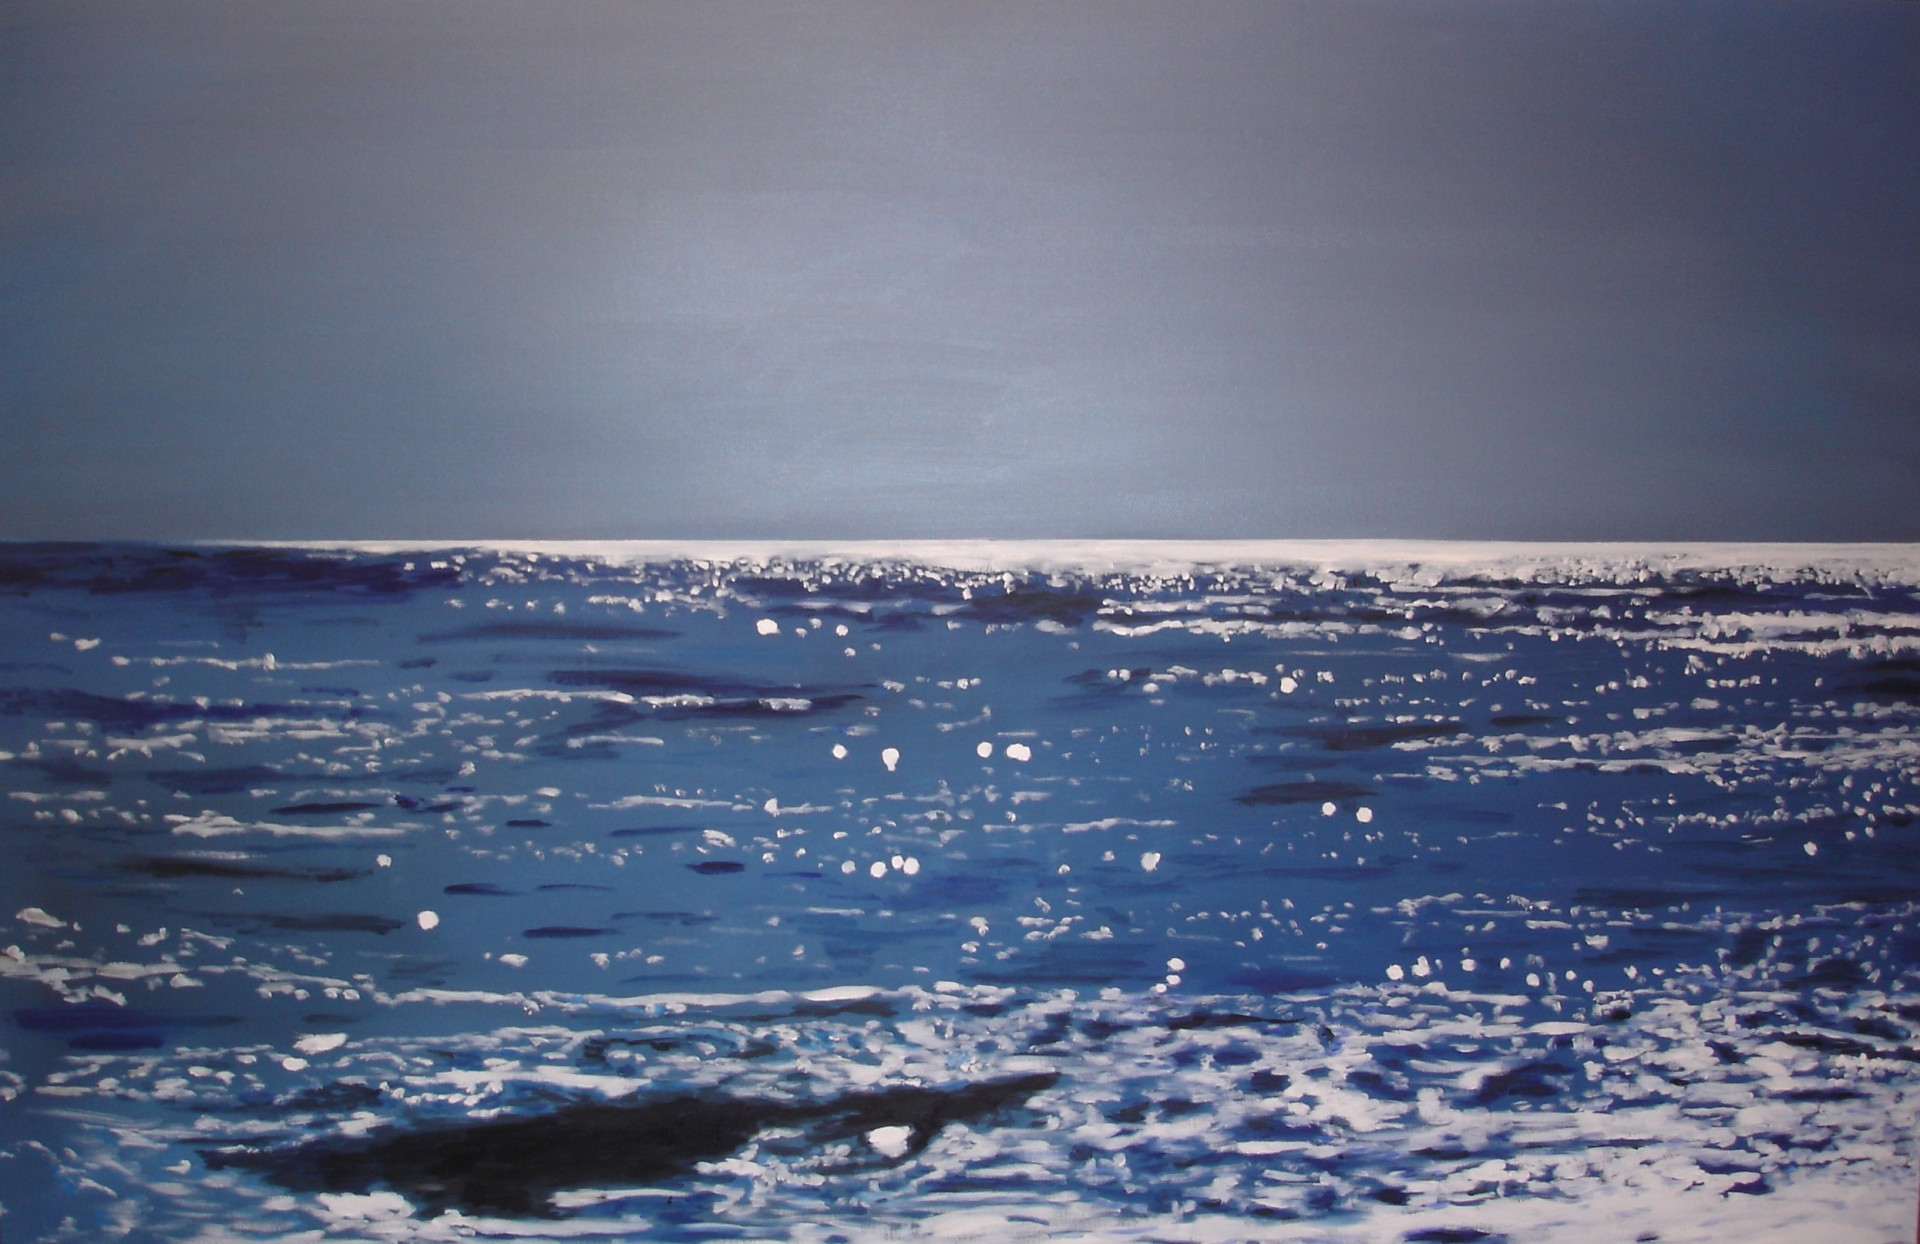 Swakop Lichtleicht, 2013, oil on Canvas, 100 x 155 cm